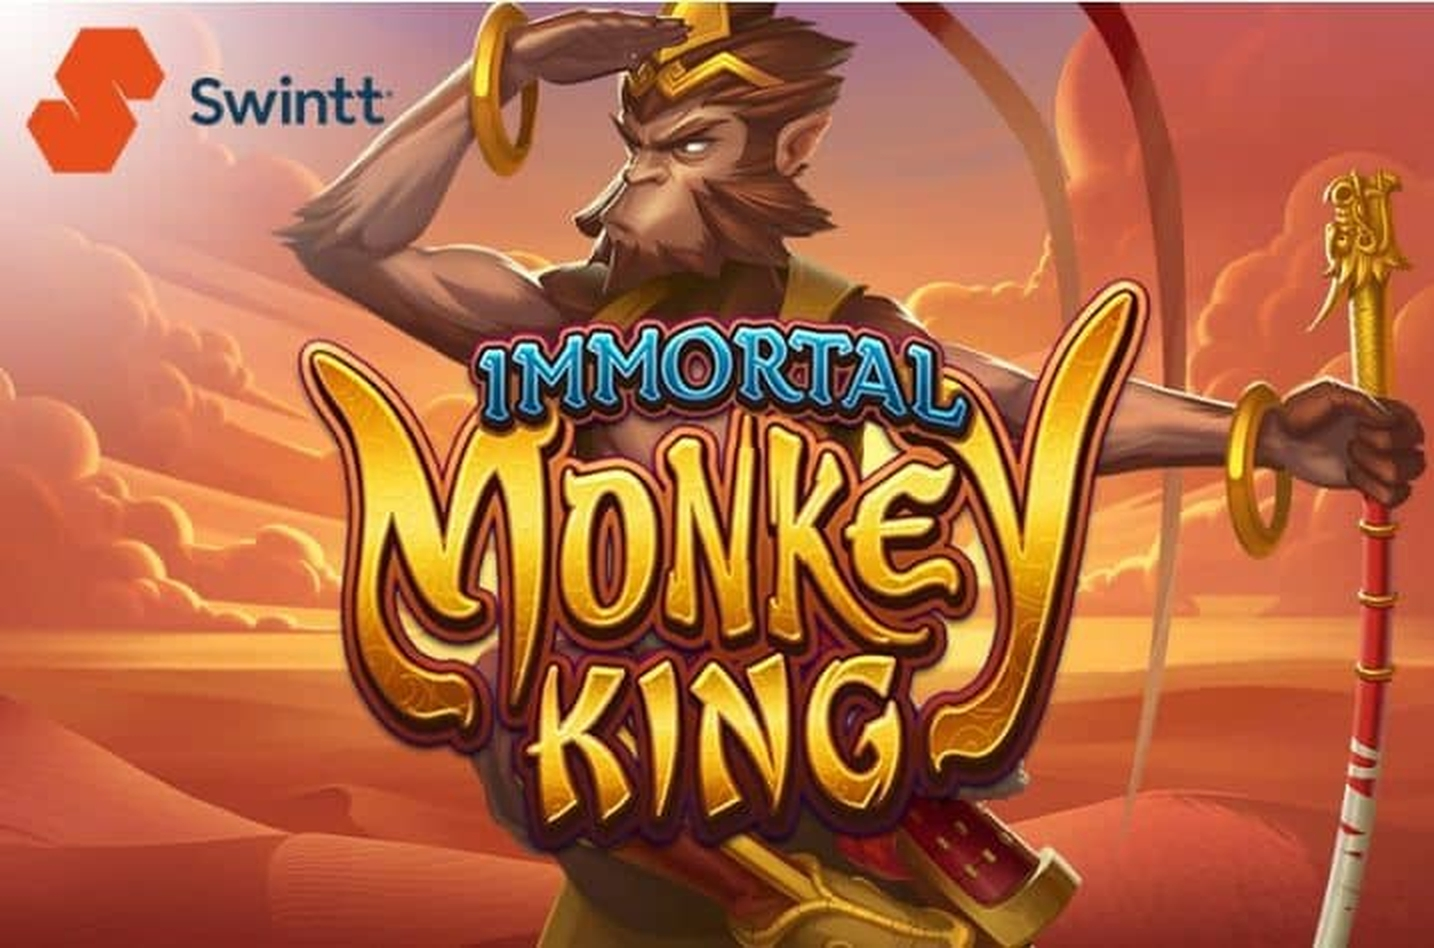 Win Money in Immortal Monkey King Free Slot Game by Swintt